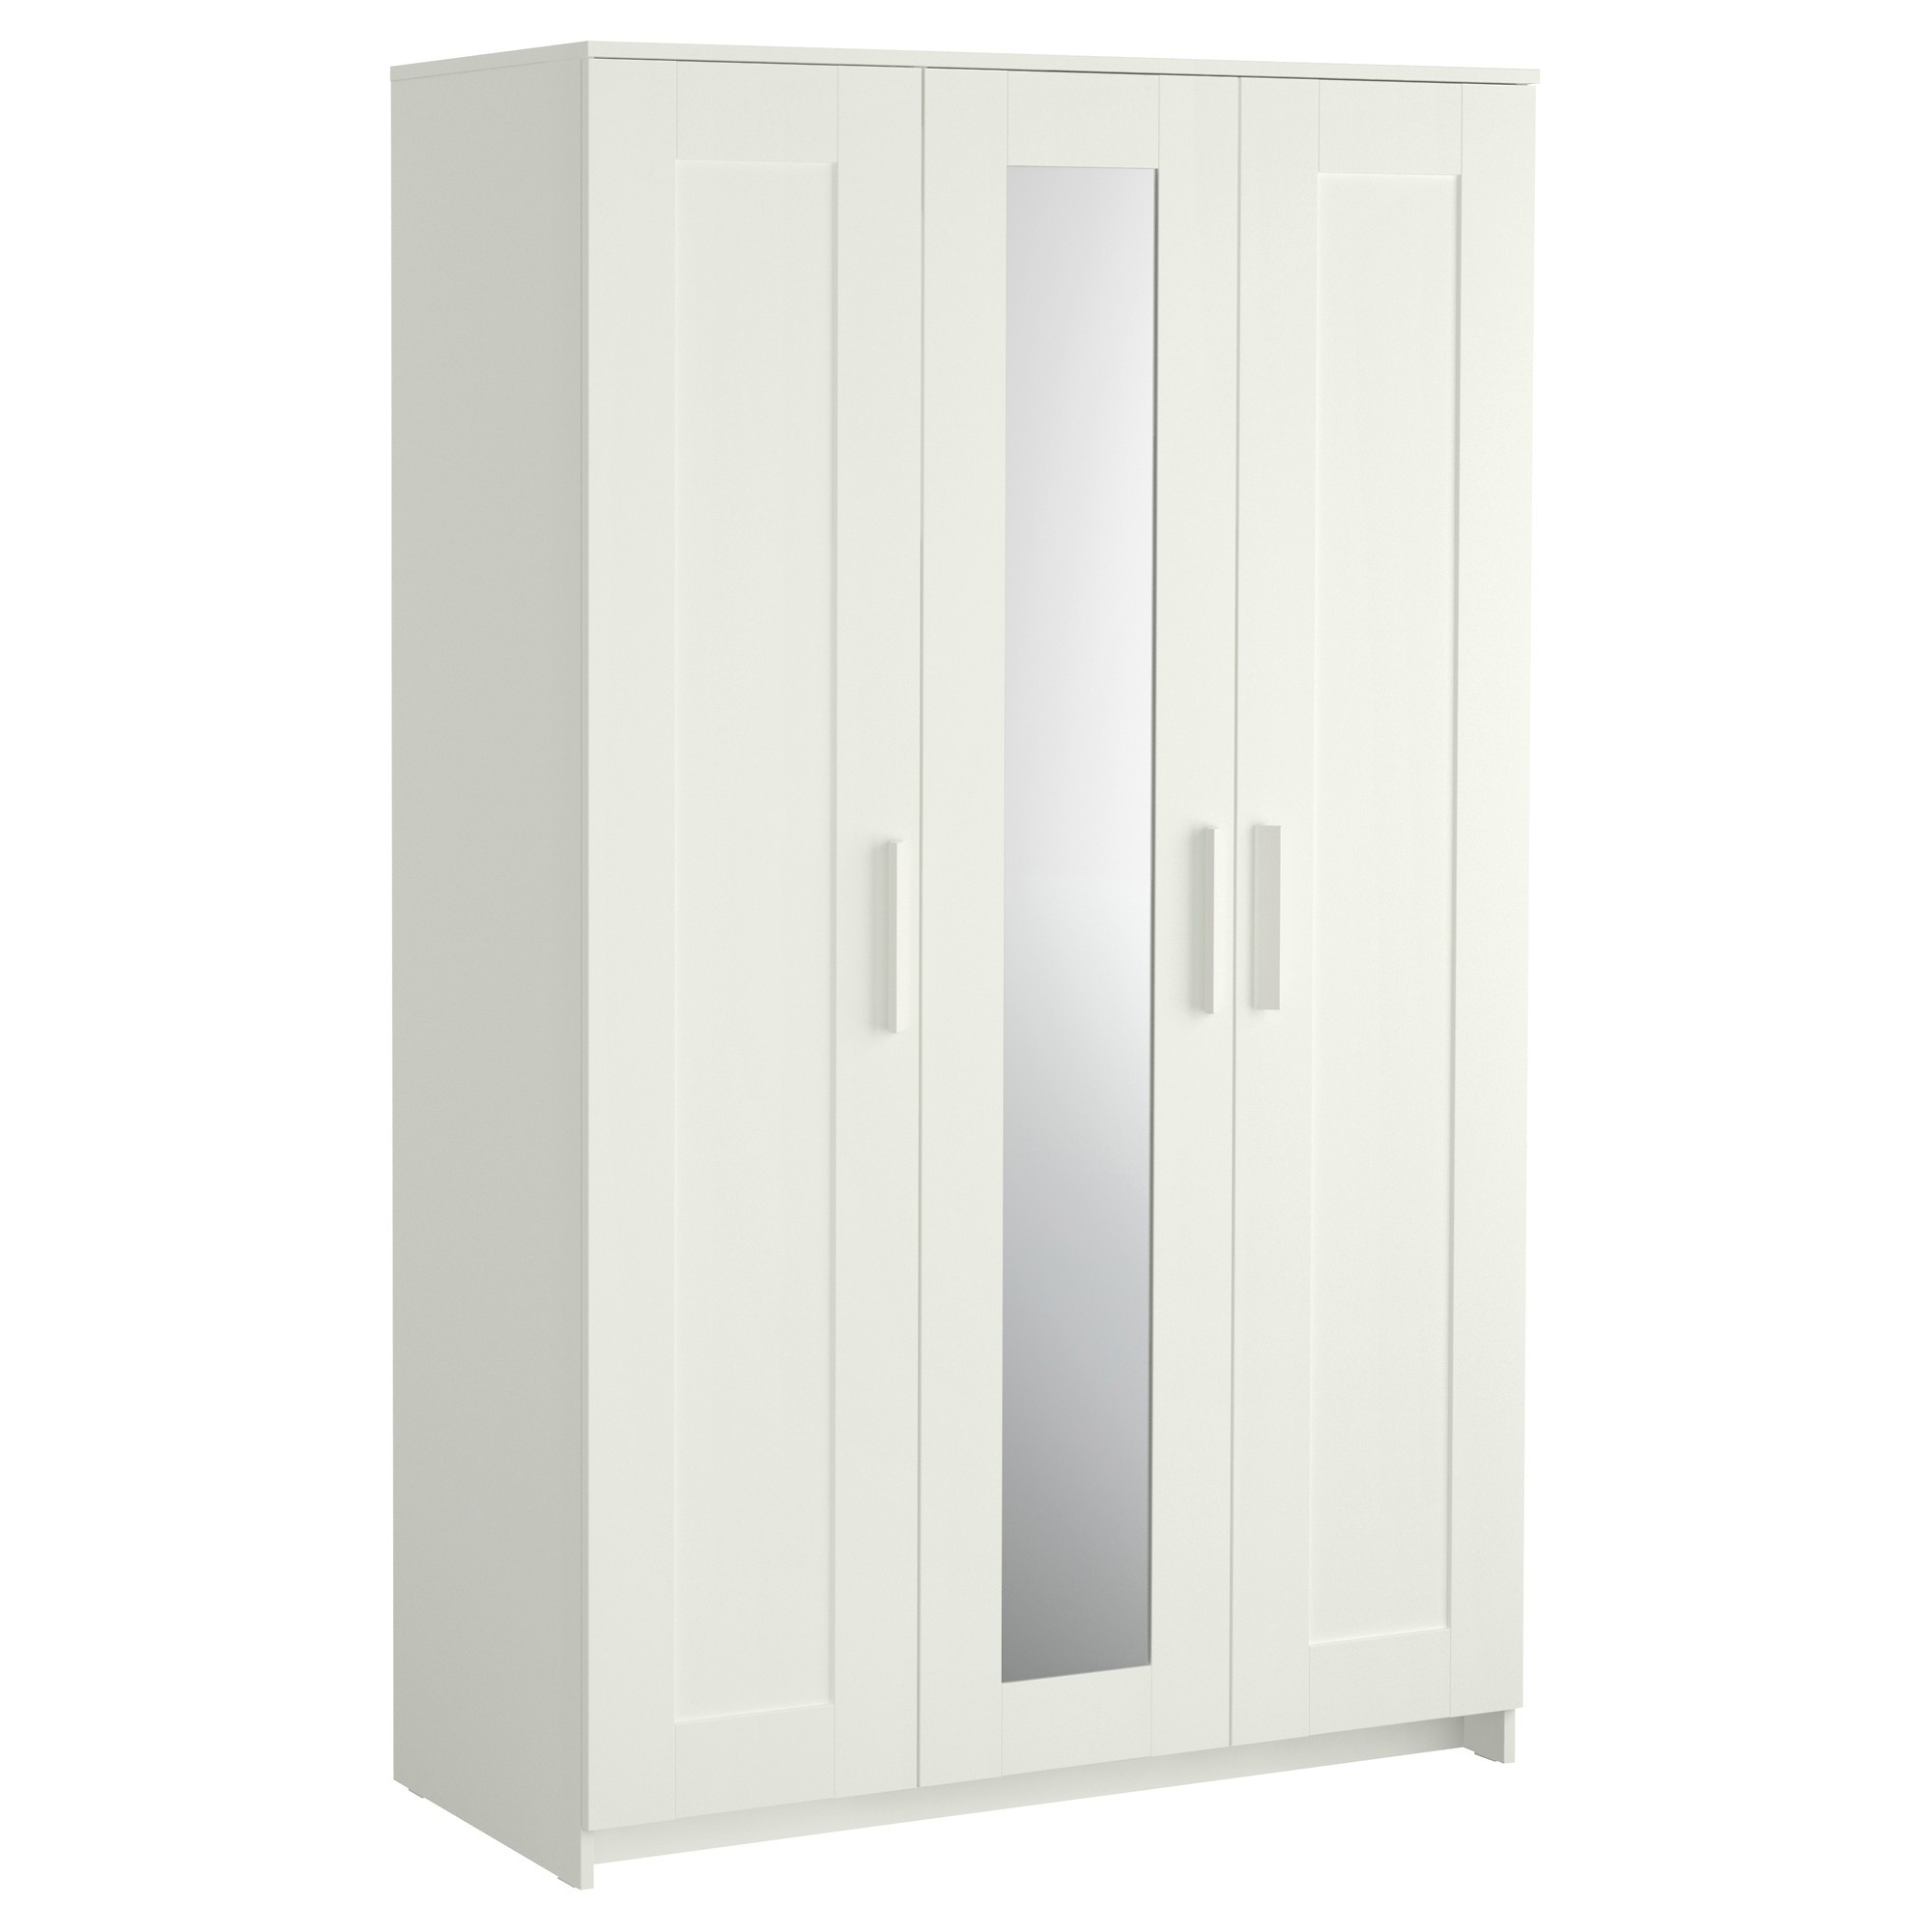 armoire blanche portes coulissantes ikea armoire id es de d coration de maison p7nlpomnx1. Black Bedroom Furniture Sets. Home Design Ideas